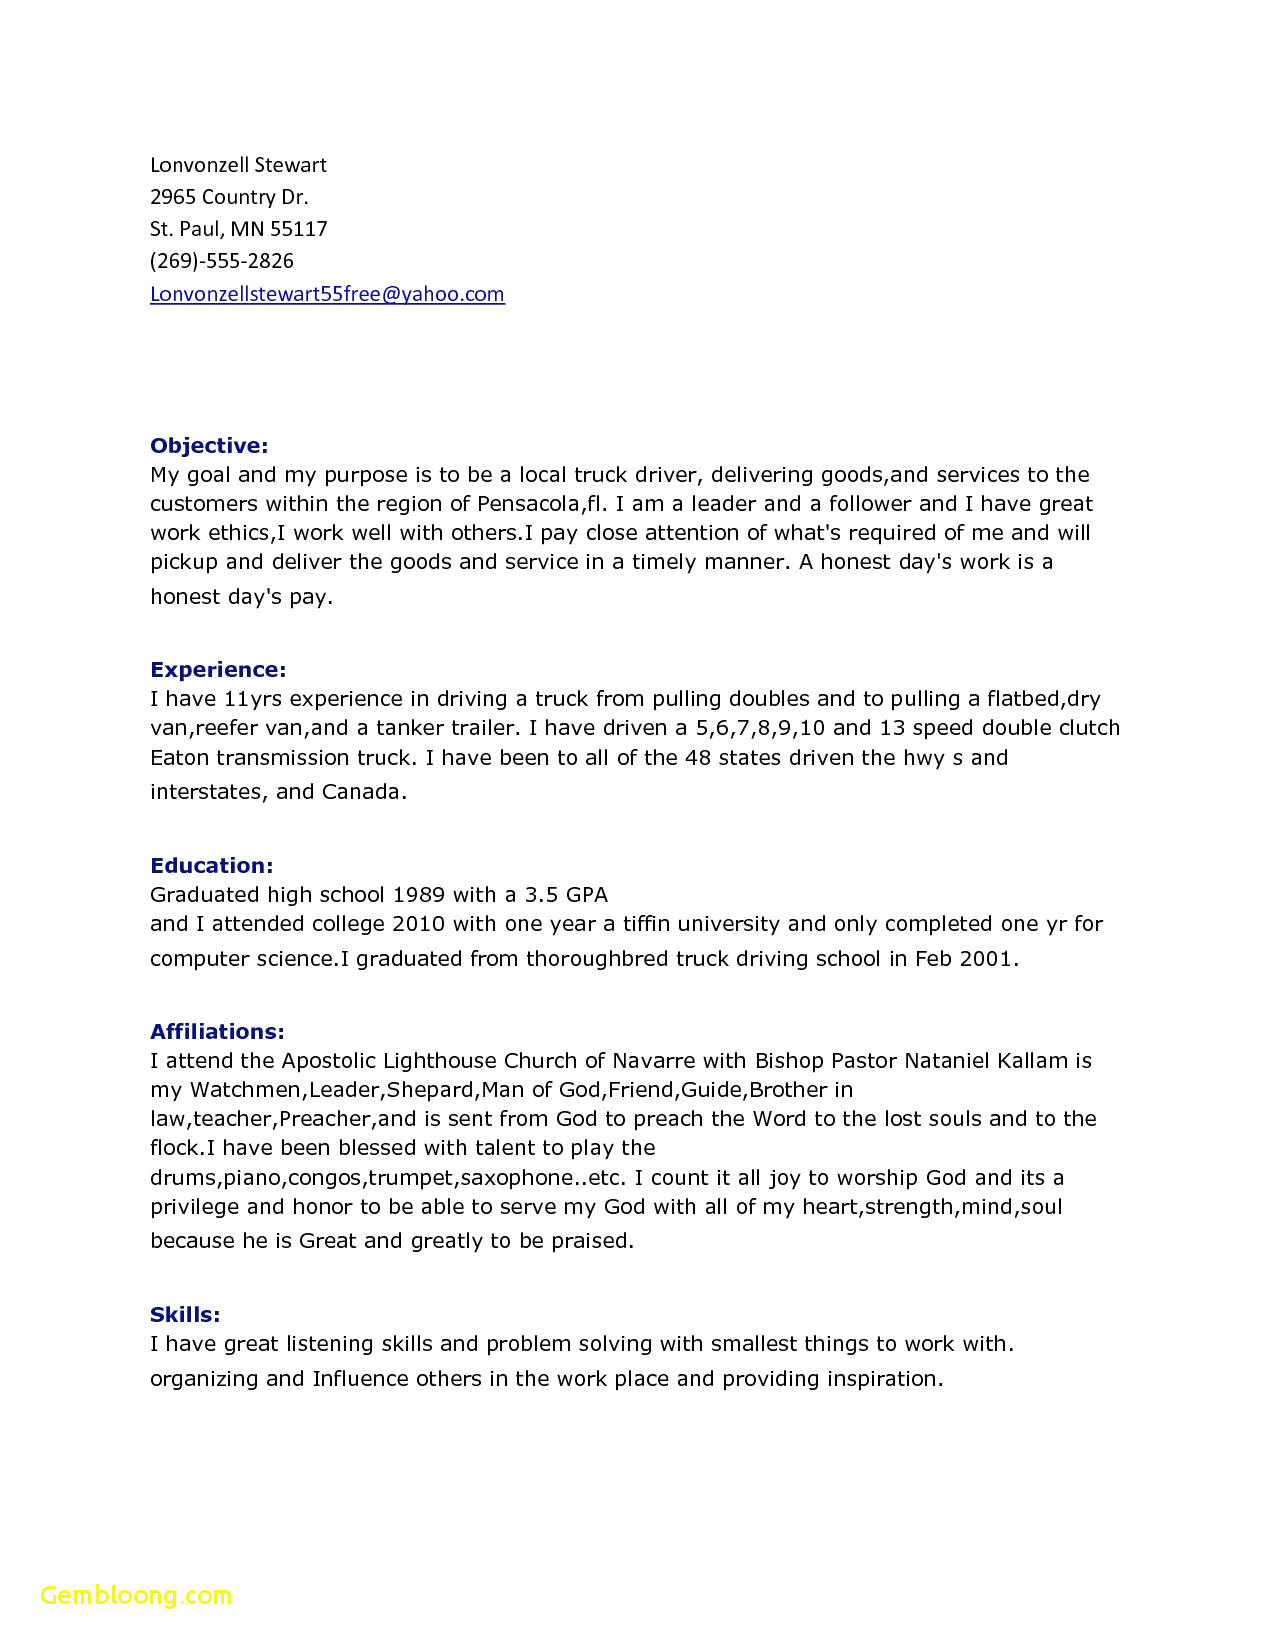 Truck Driver Resume - 61 Awesome Truck Driver Resume